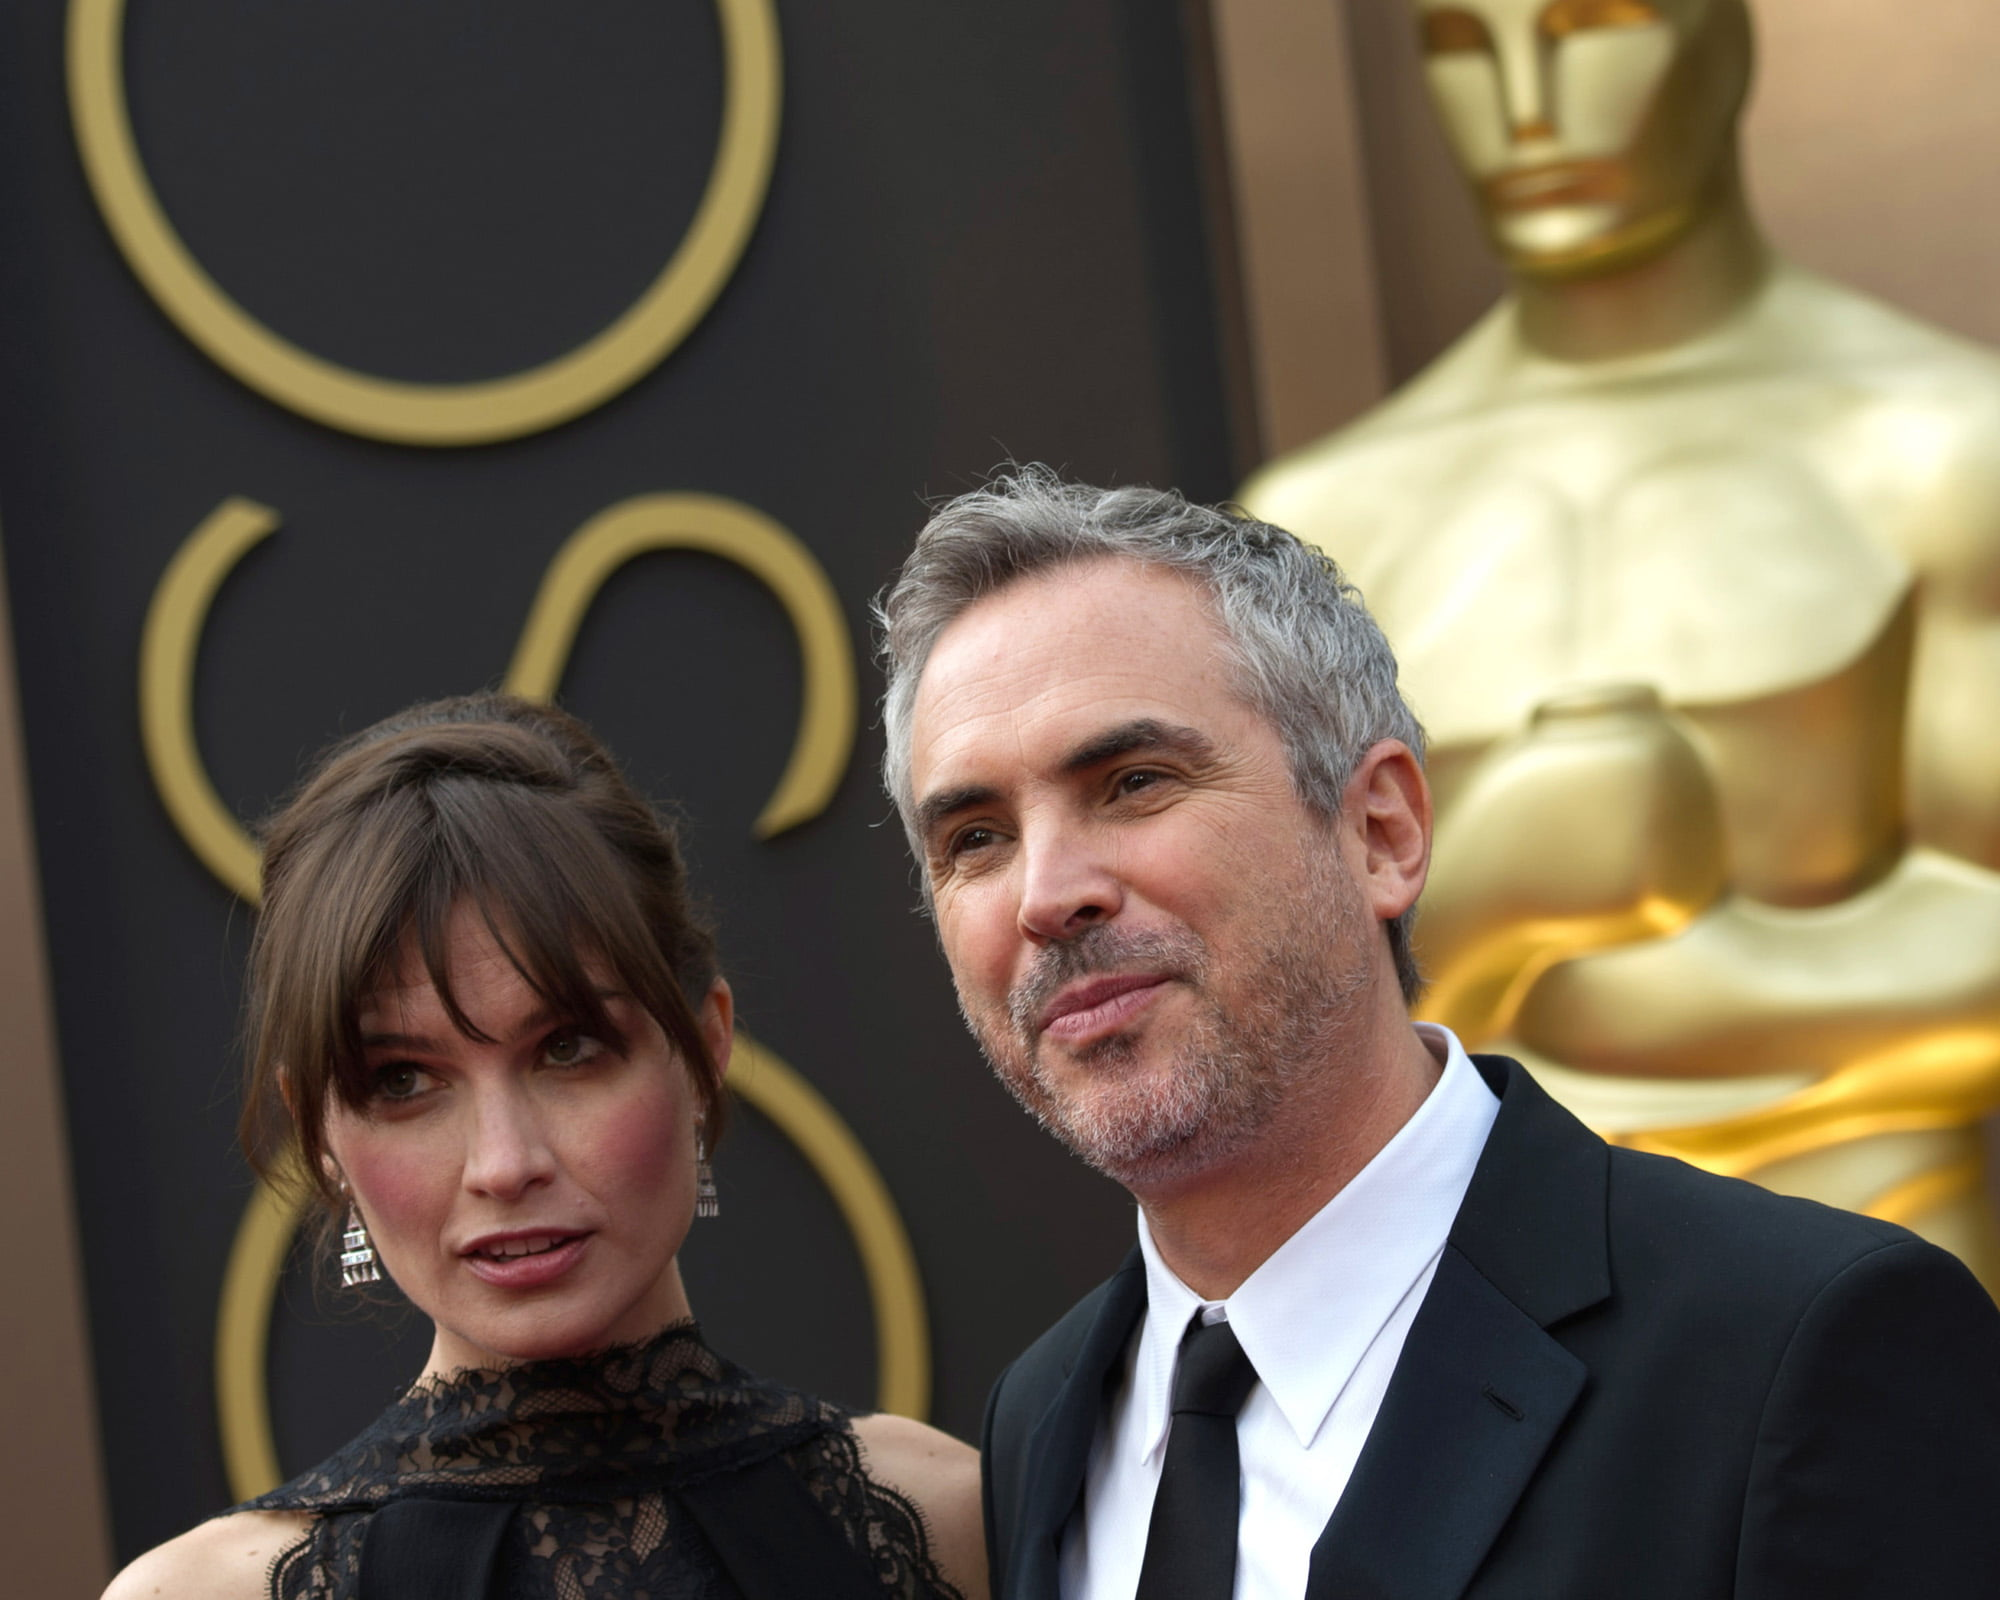 Sheherezade Goldsmith and Alfonso Cuaron